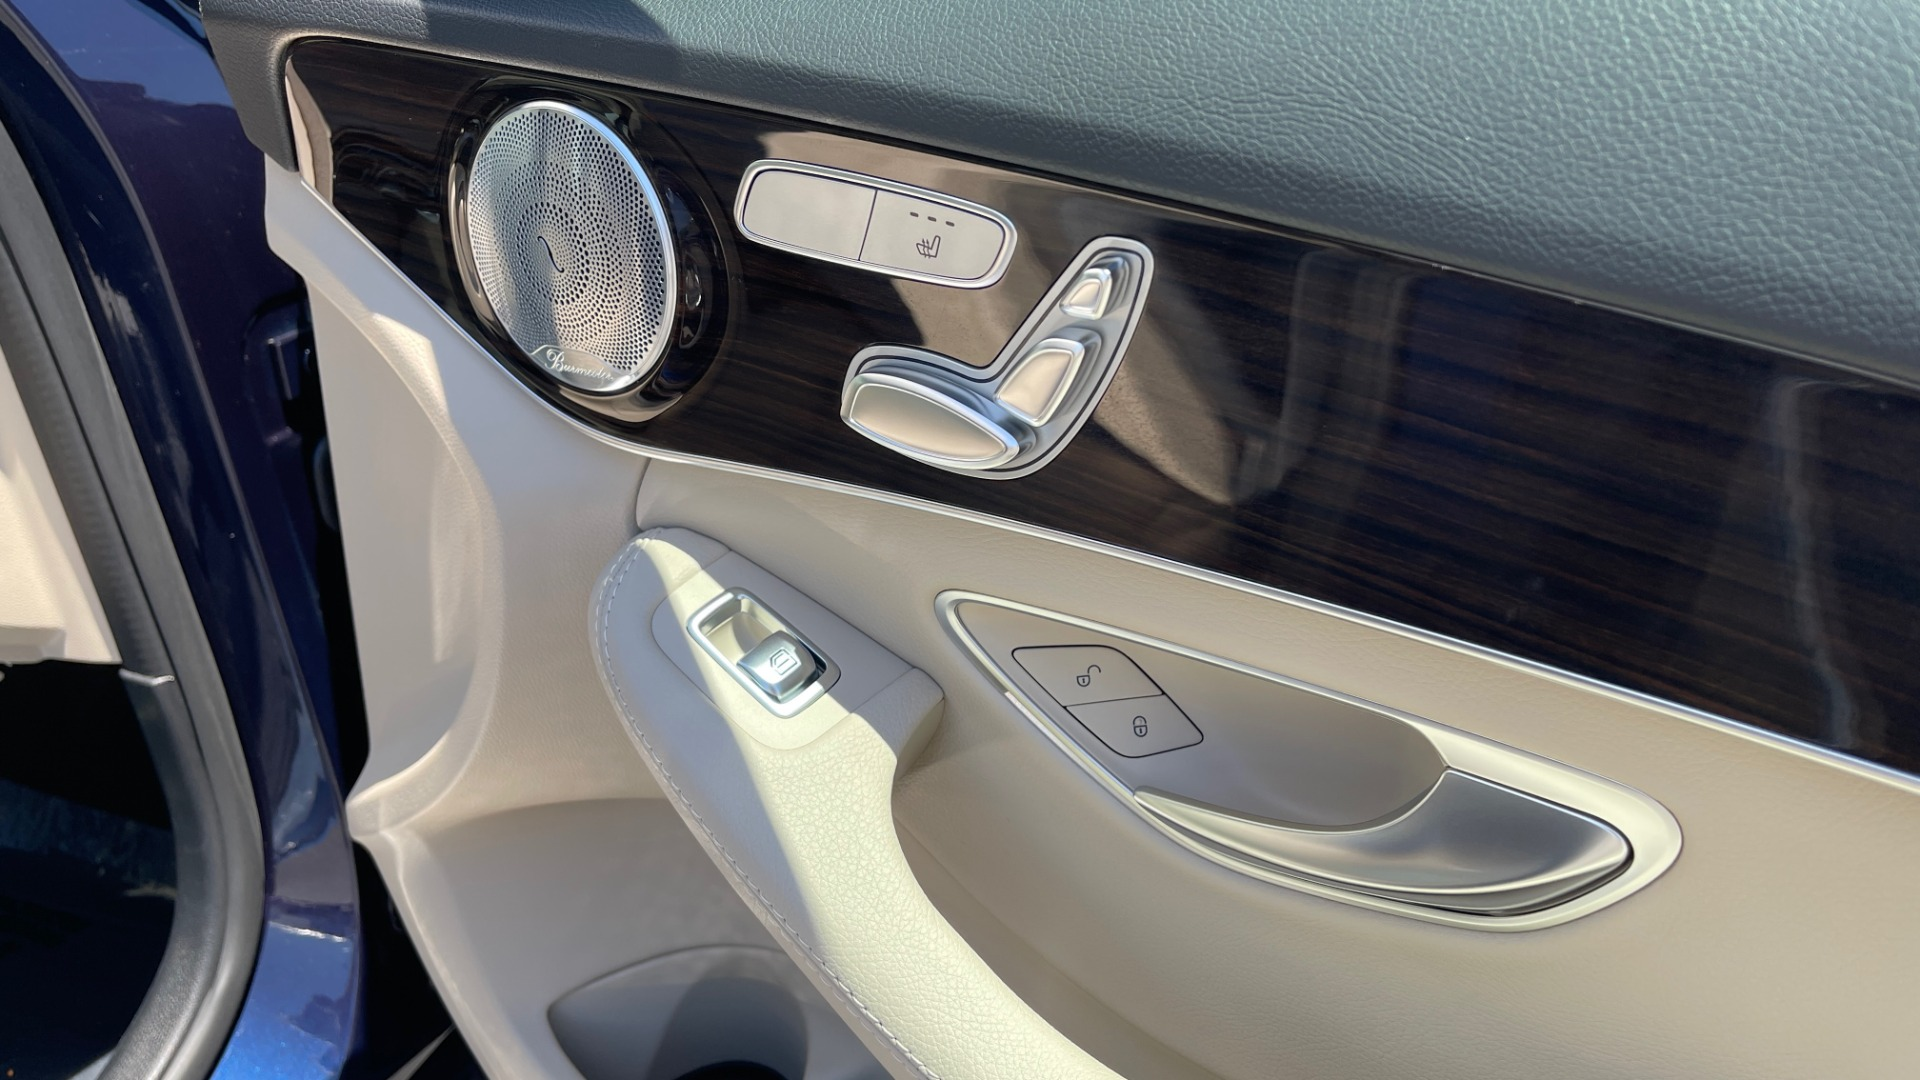 Used 2018 Mercedes-Benz C-CLASS C 300 PREMIUM / KEYLESS-GO / PANO-ROOF / BURMESTER / REARVIEW for sale $29,495 at Formula Imports in Charlotte NC 28227 67